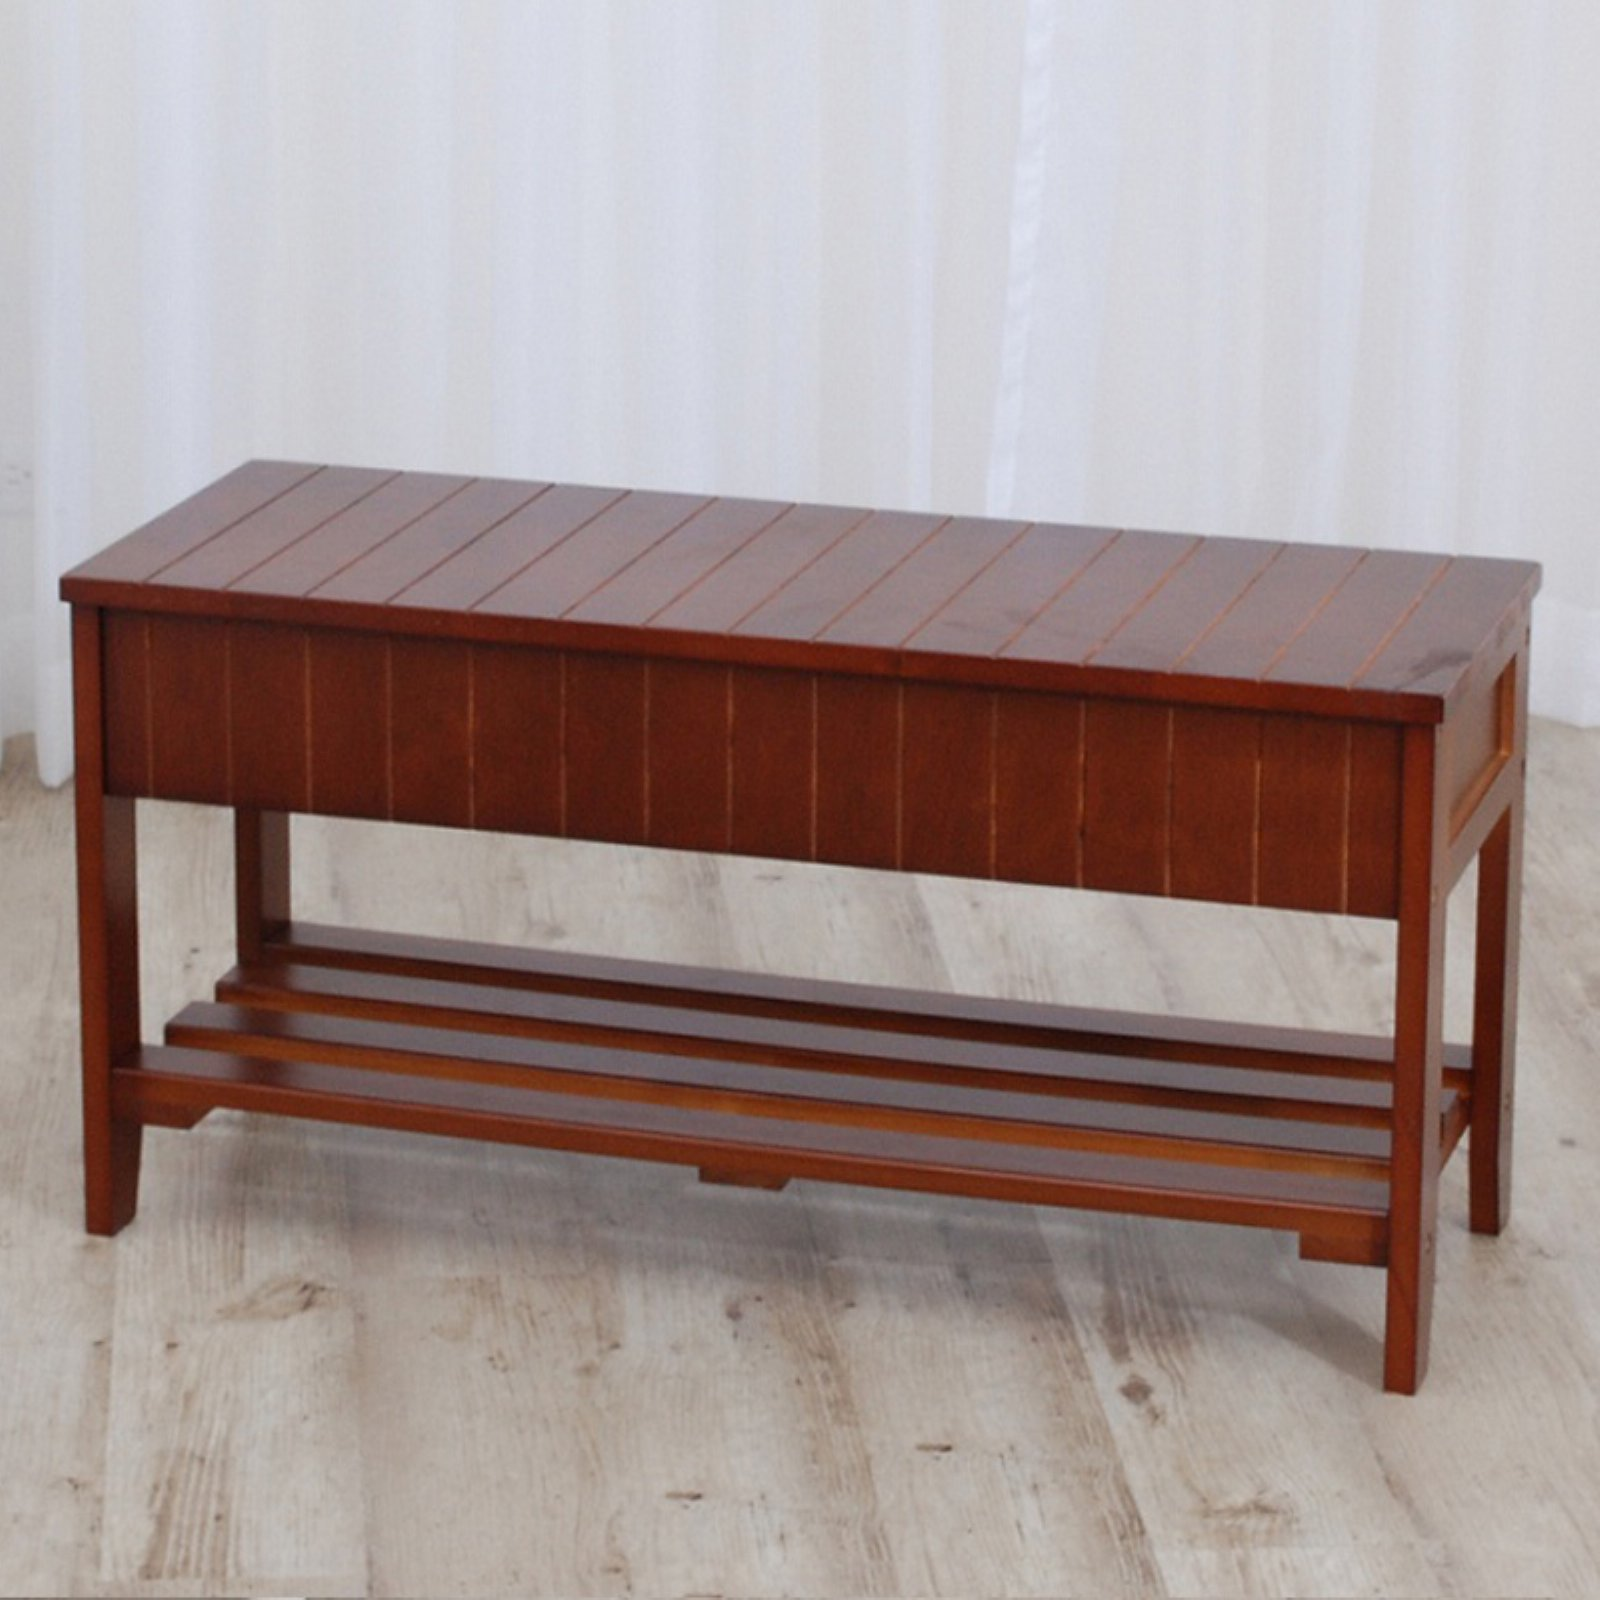 Roundhill Furniture Solid Wood Shoe Storage Bench Bench With Shoe Storage Wood Shoe Storage Storage Bench